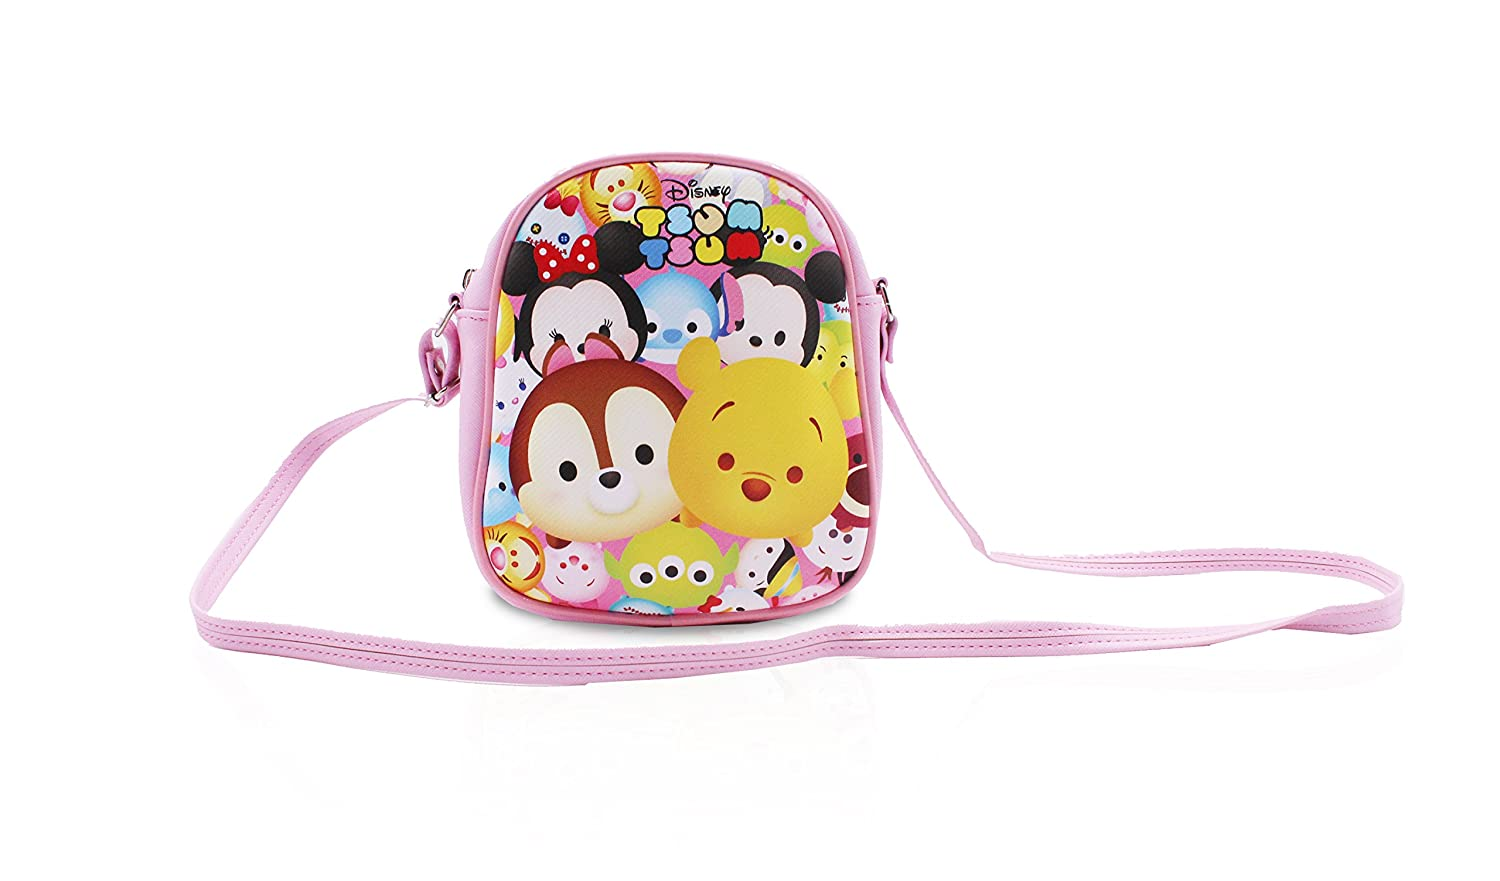 Finex Pink Peppa Pig Premium PU Leather Little Handbag Purse for kids toddlers preschoolers girls boys SF366A1